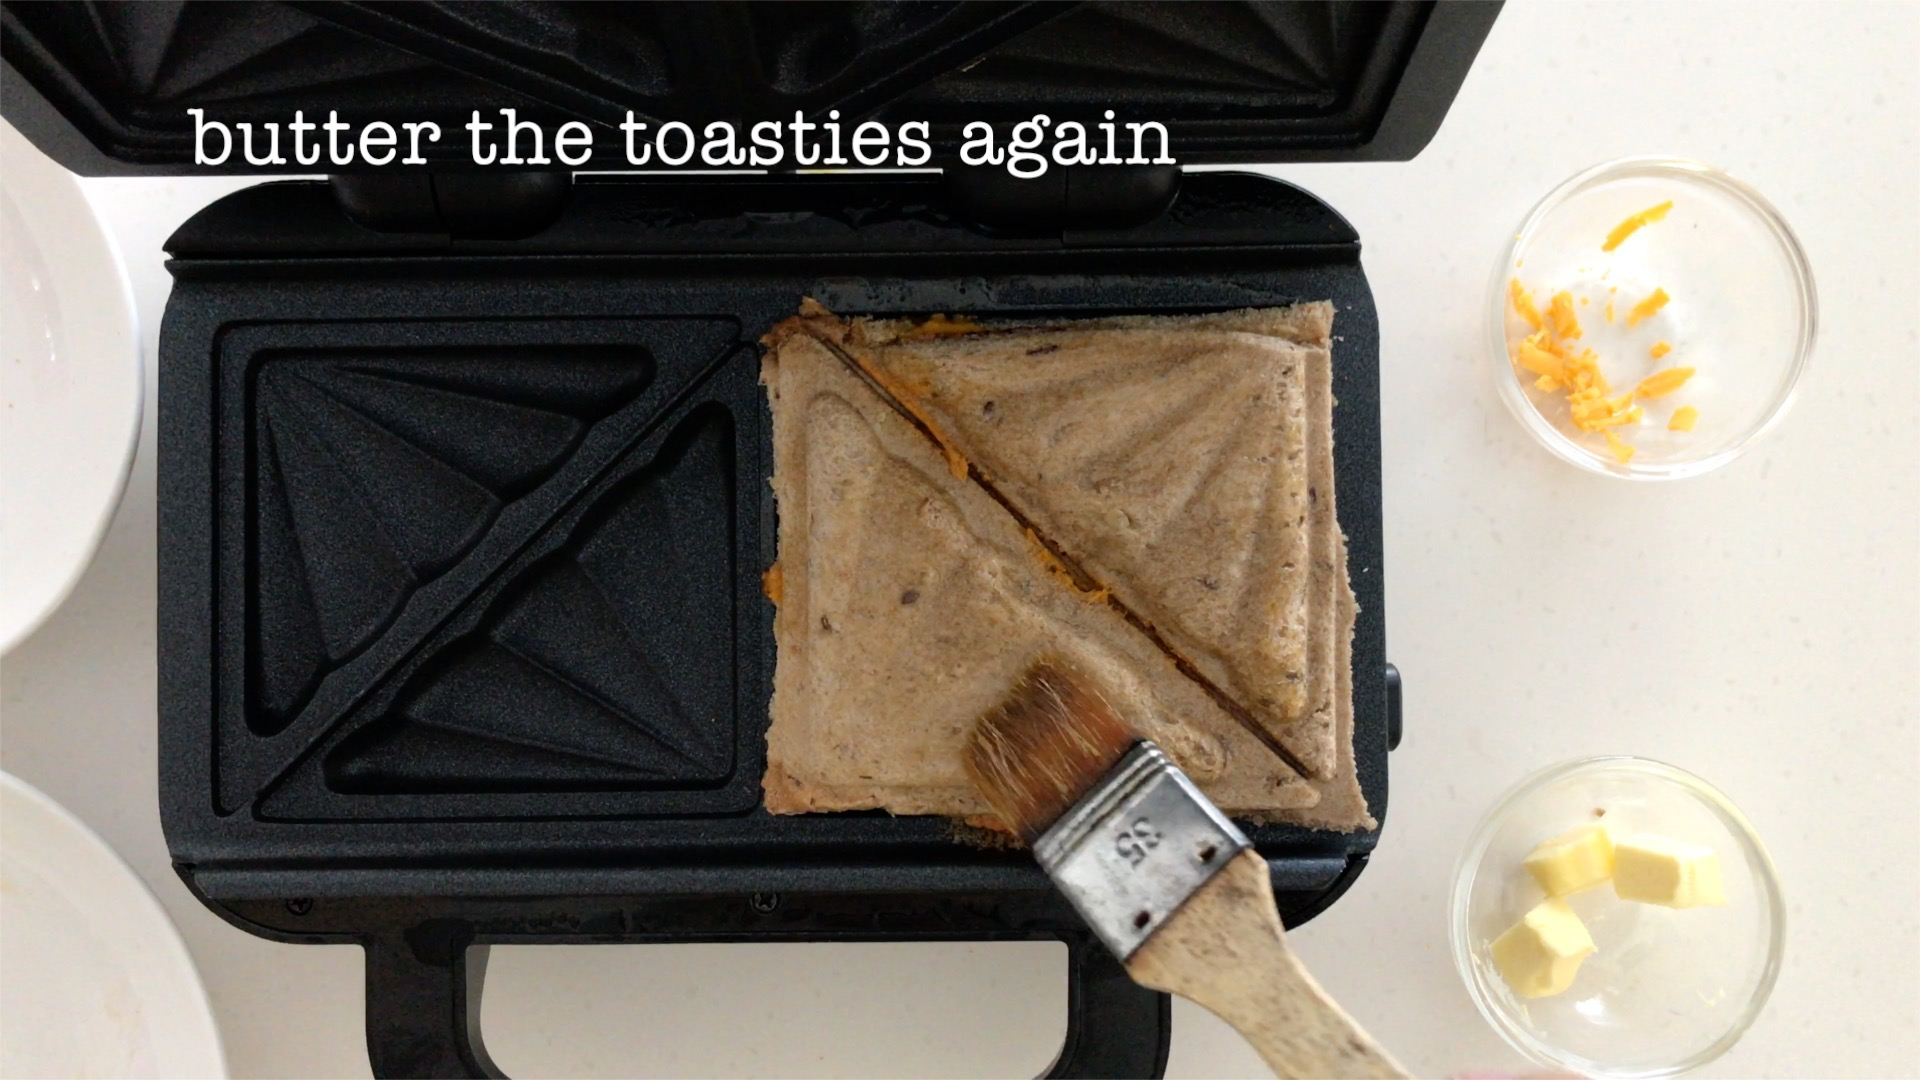 Brush melted butter all over the toasties